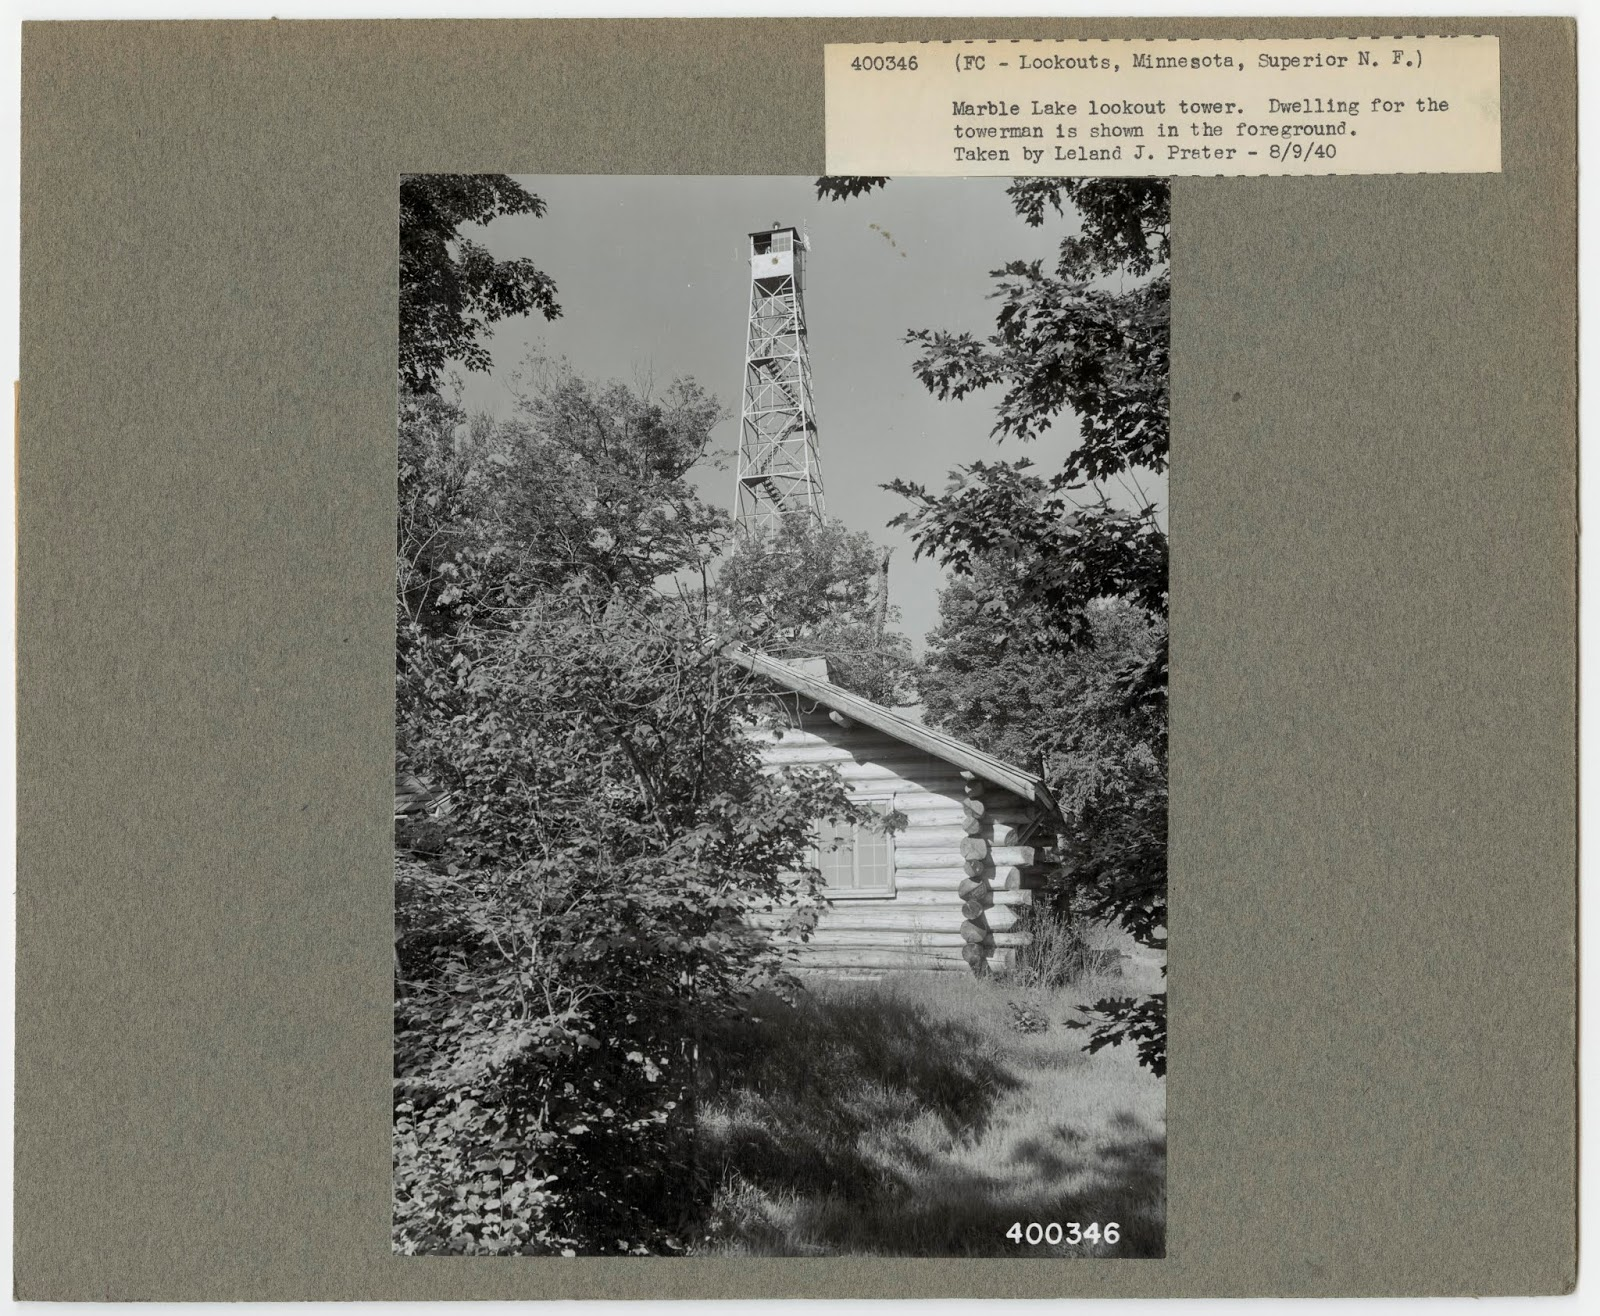 Minnesota's Historical Fire Lookout Towers